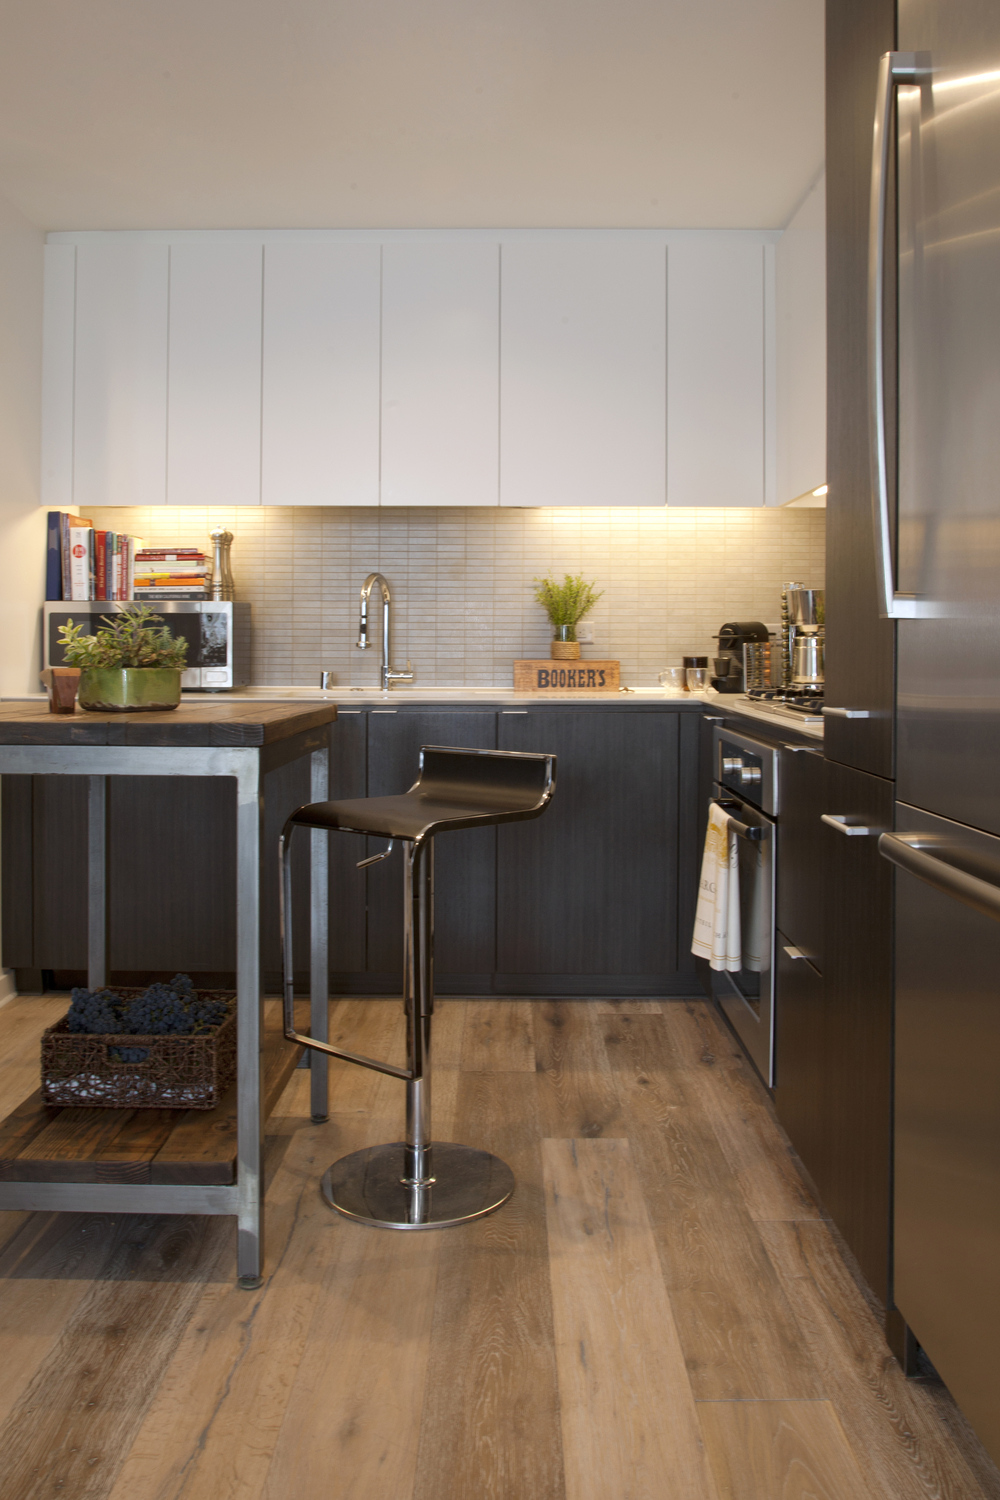 Modern white kitchen bar stools and cutting board island